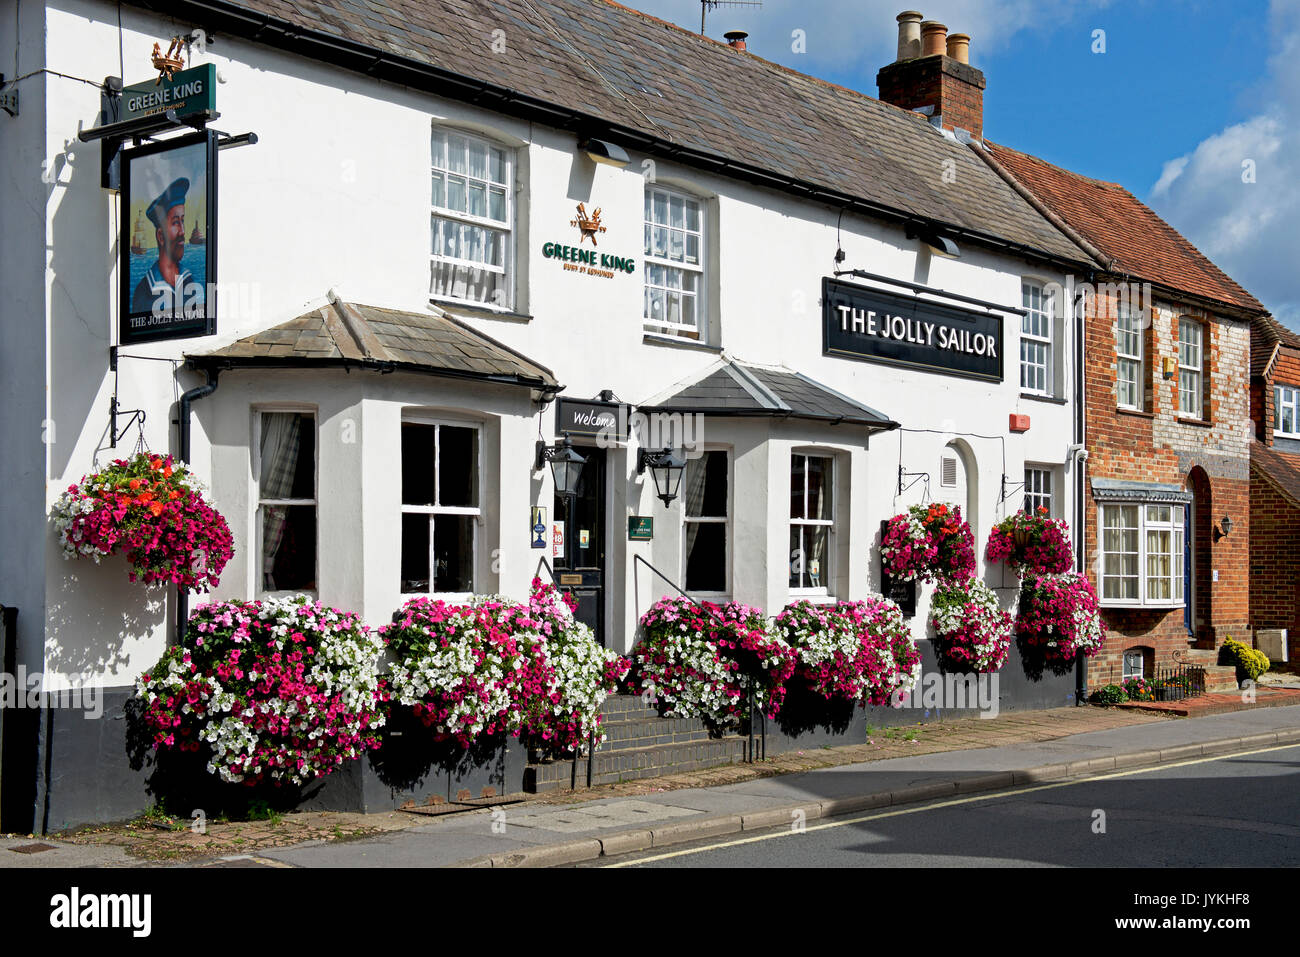 The Jolly Sailor pub, West Street, Farnham, Surrey, England UK - Stock Image